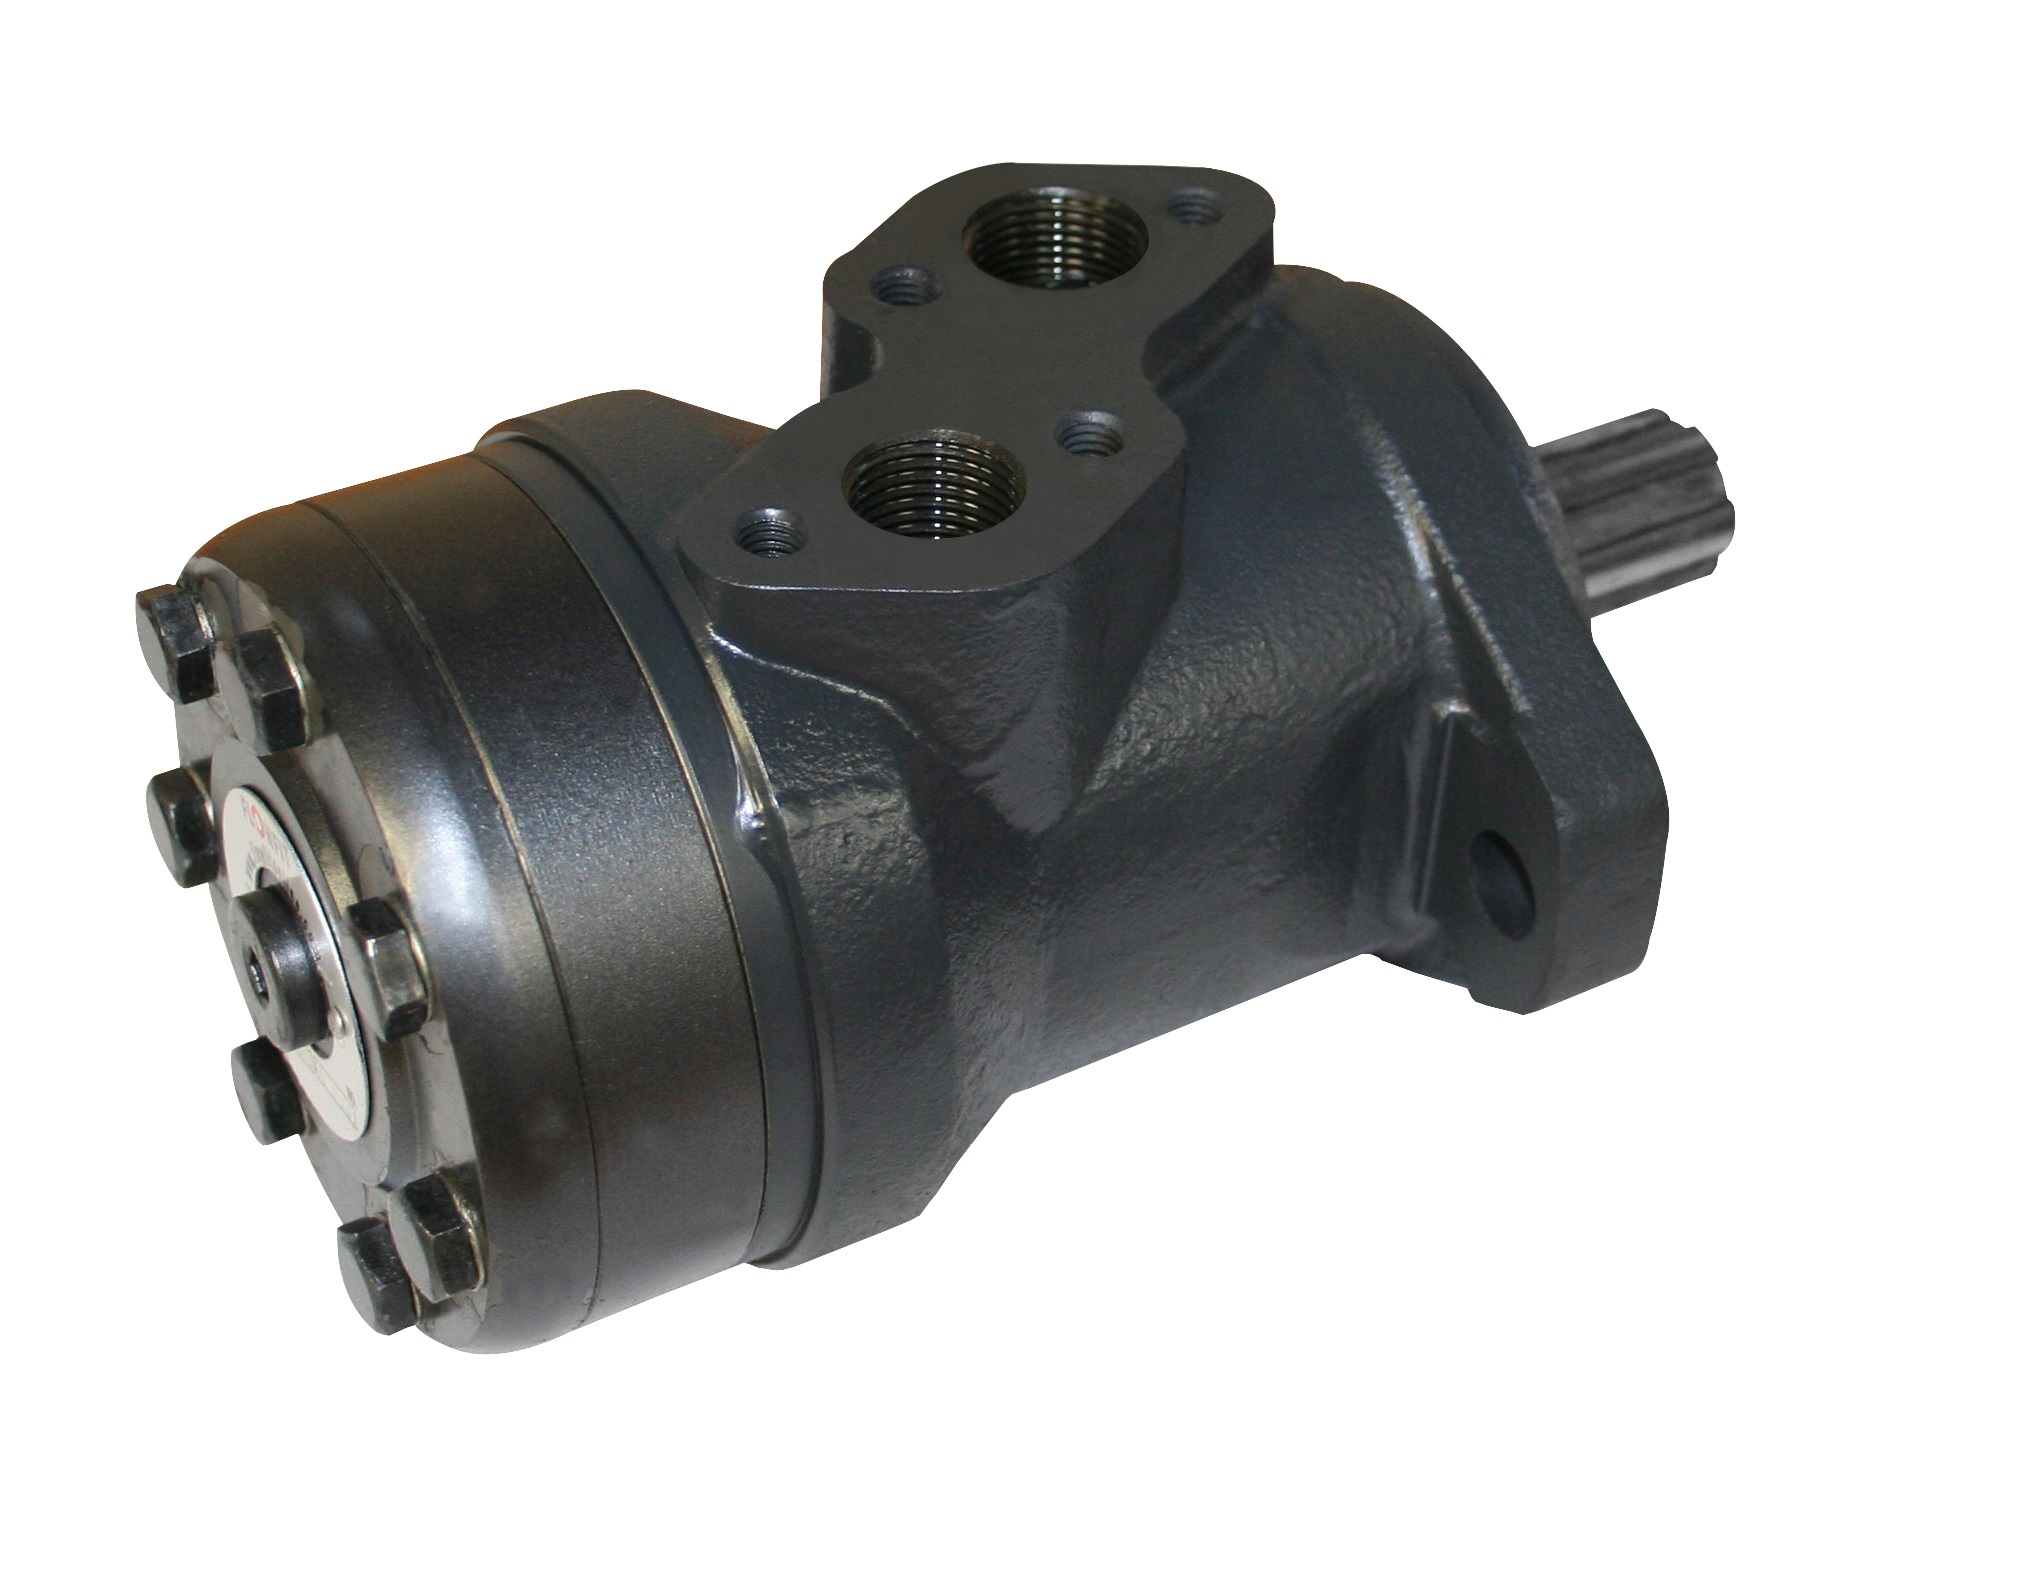 Ffprm Series Hydraulic Motors